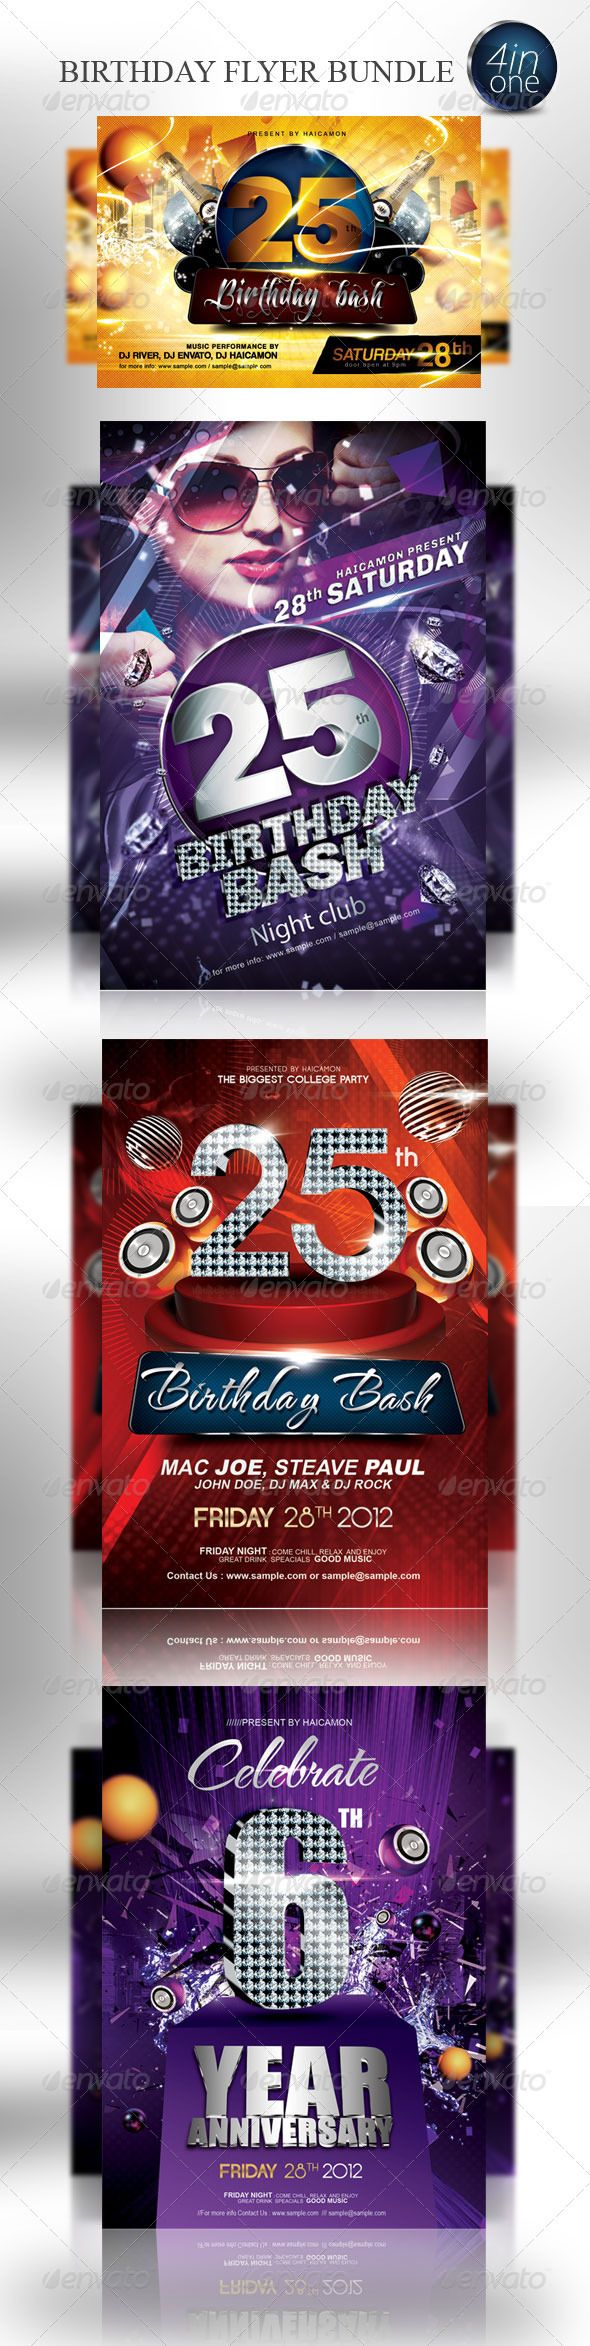 Birthday party invitation flyer bundle pinterest party birthday party invitation flyer bundle graphicriver birthday party invitation flyer bundle features 4 in one fully customizable 64 12751875px stopboris Gallery